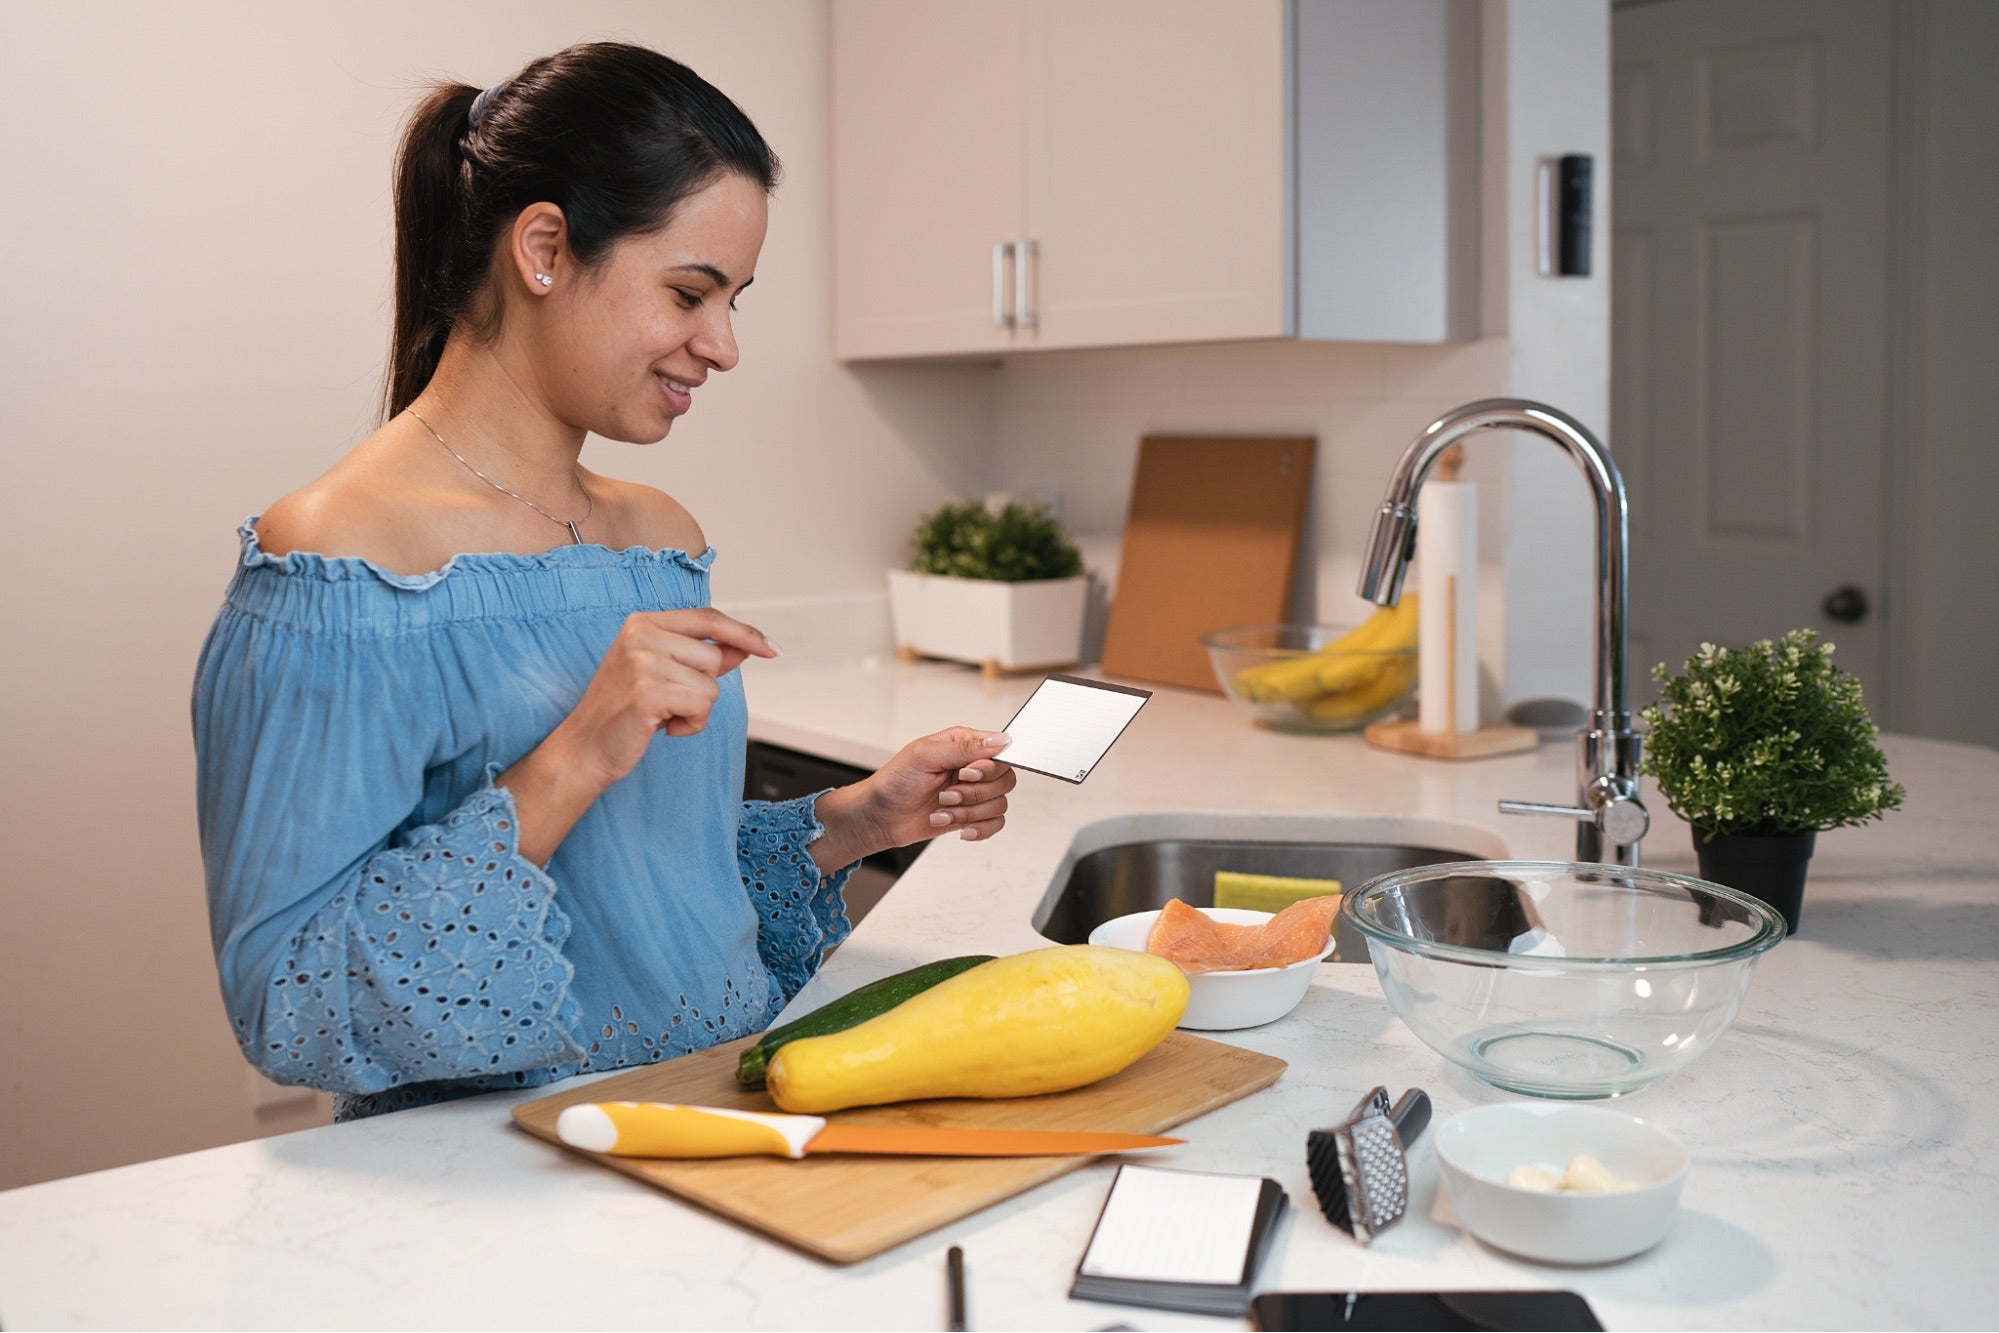 A female model using reusable note taking cards in the kitchen.